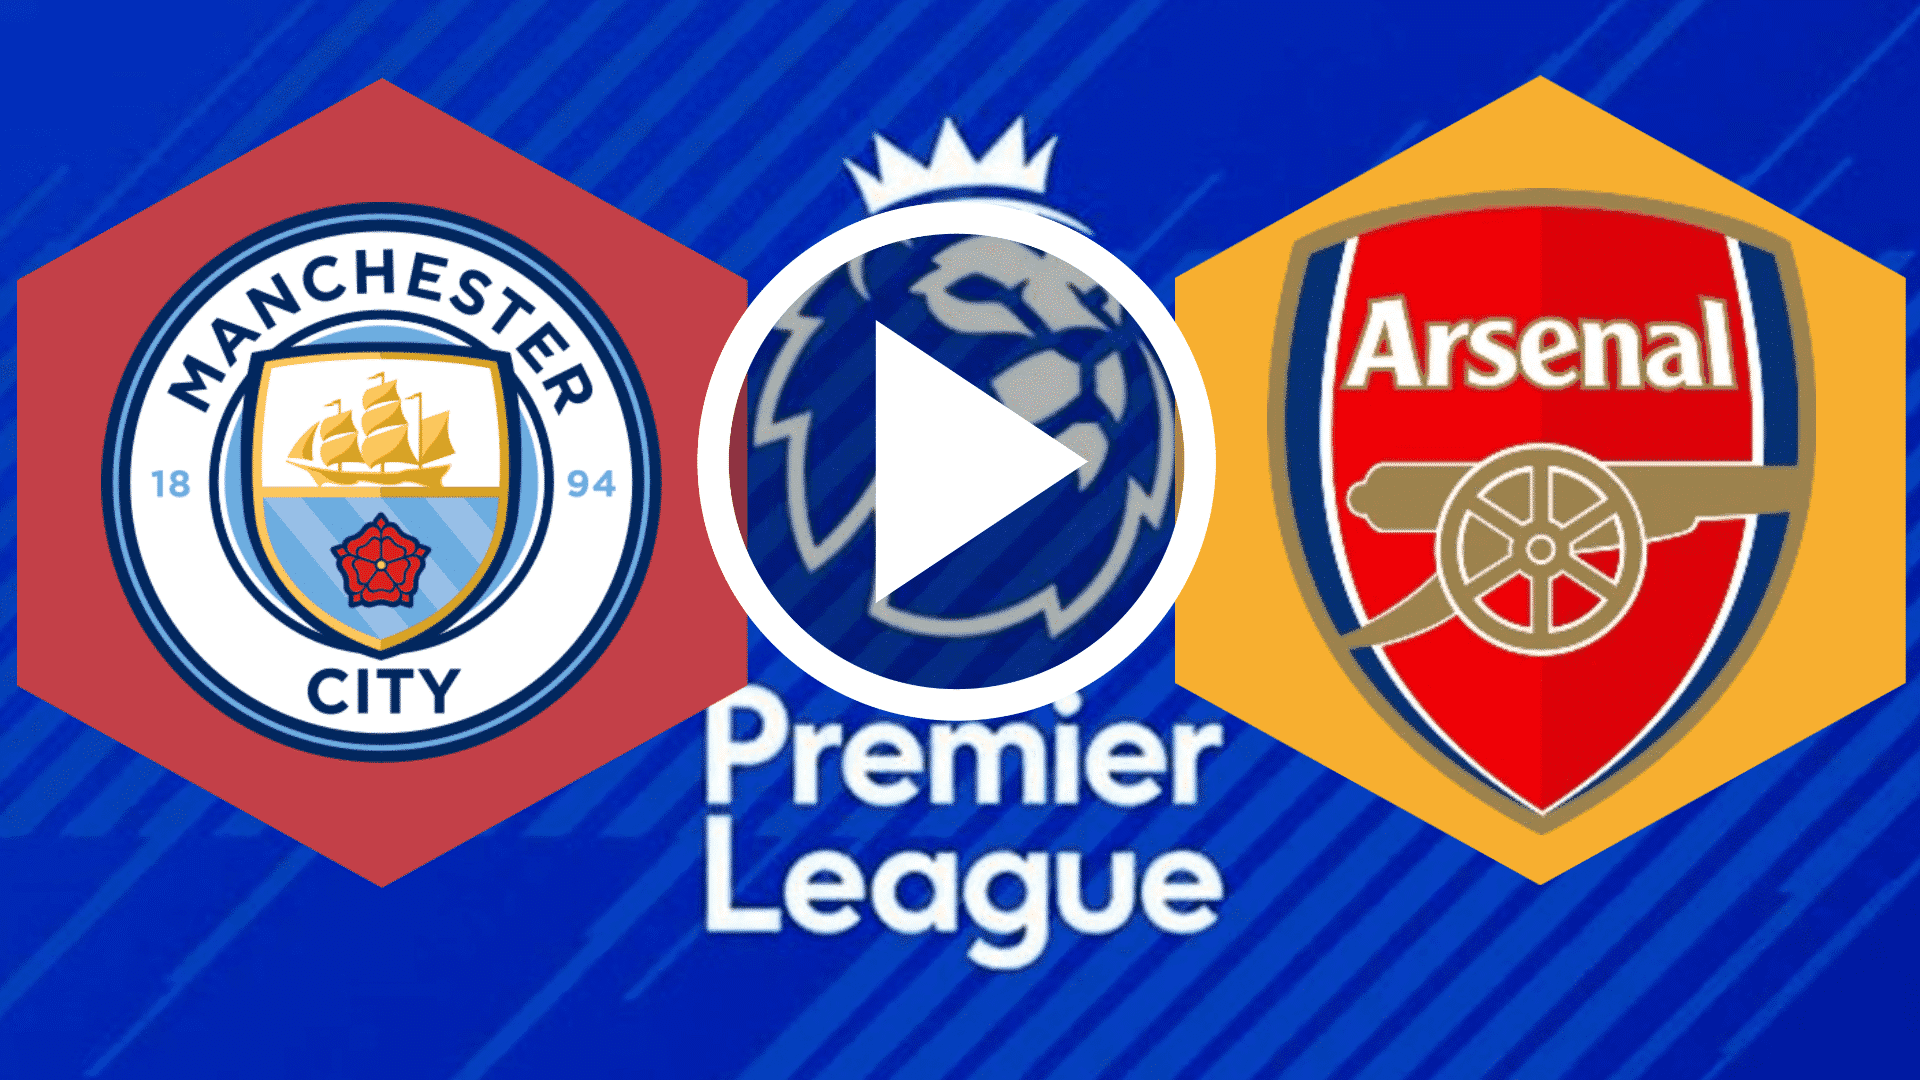 EN DIRECTO Manchester City VS Arsenal, por la Premier League de Inglaterra: horario y TV 2020